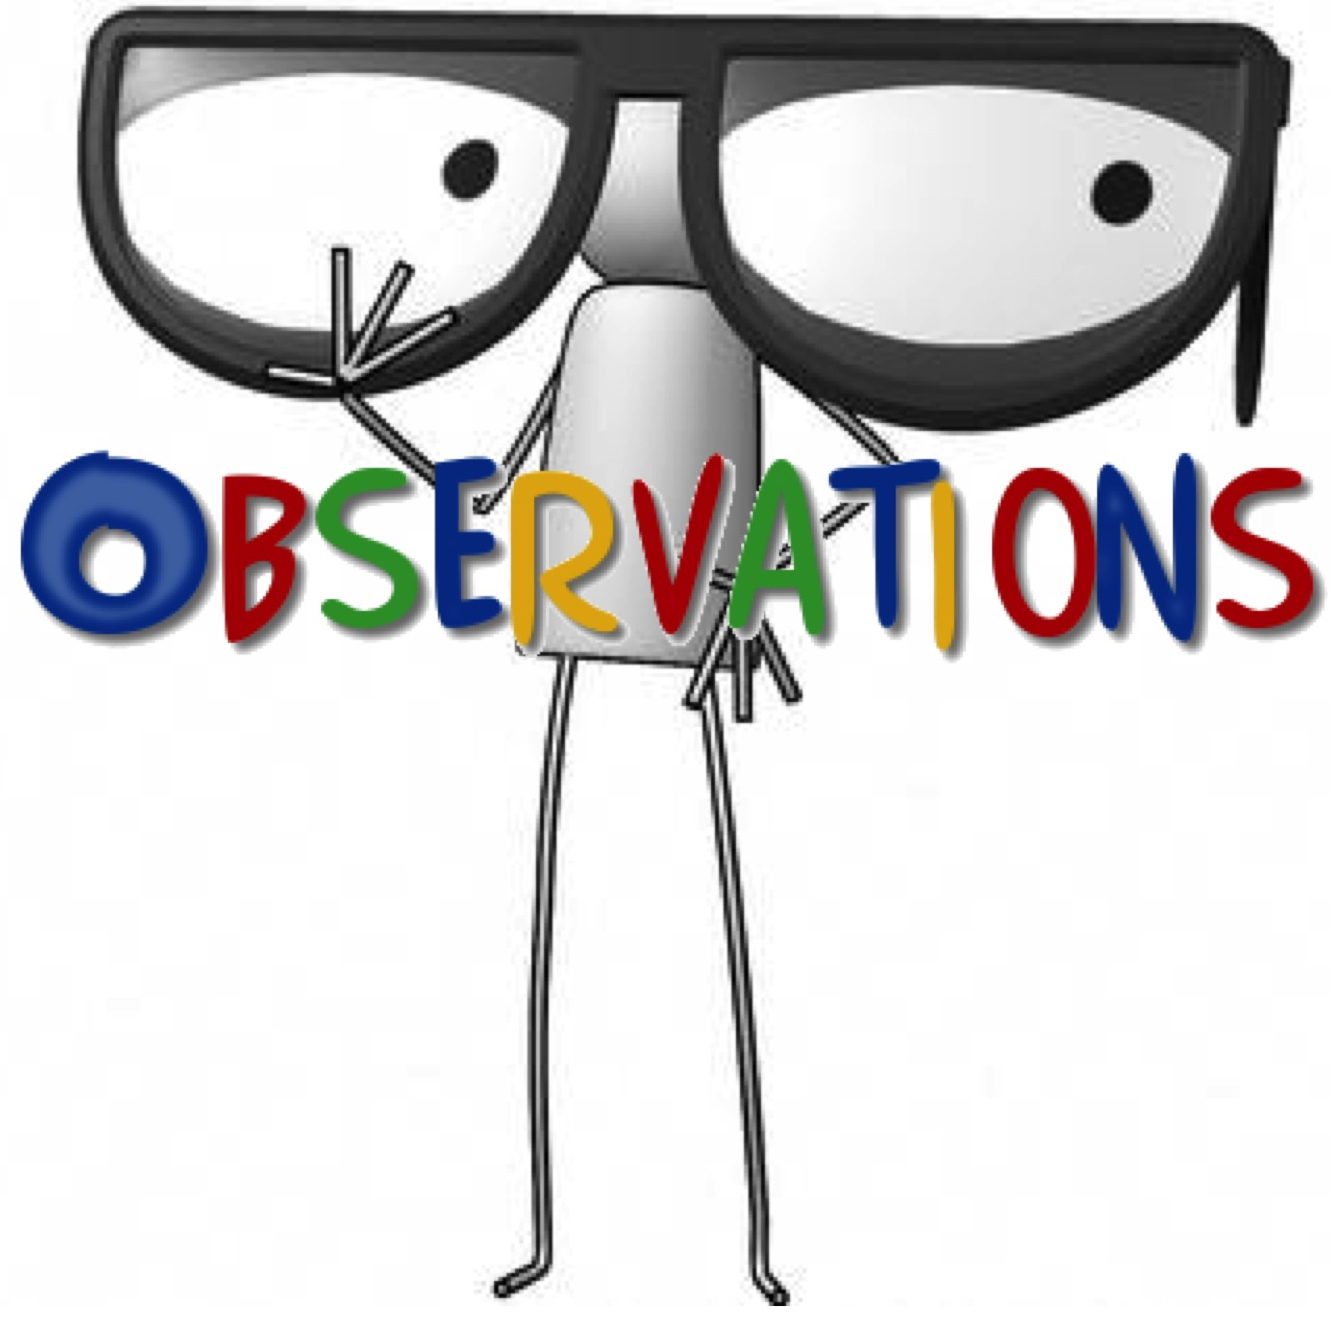 Proposition D Une Methodologie De L Observation En Eps